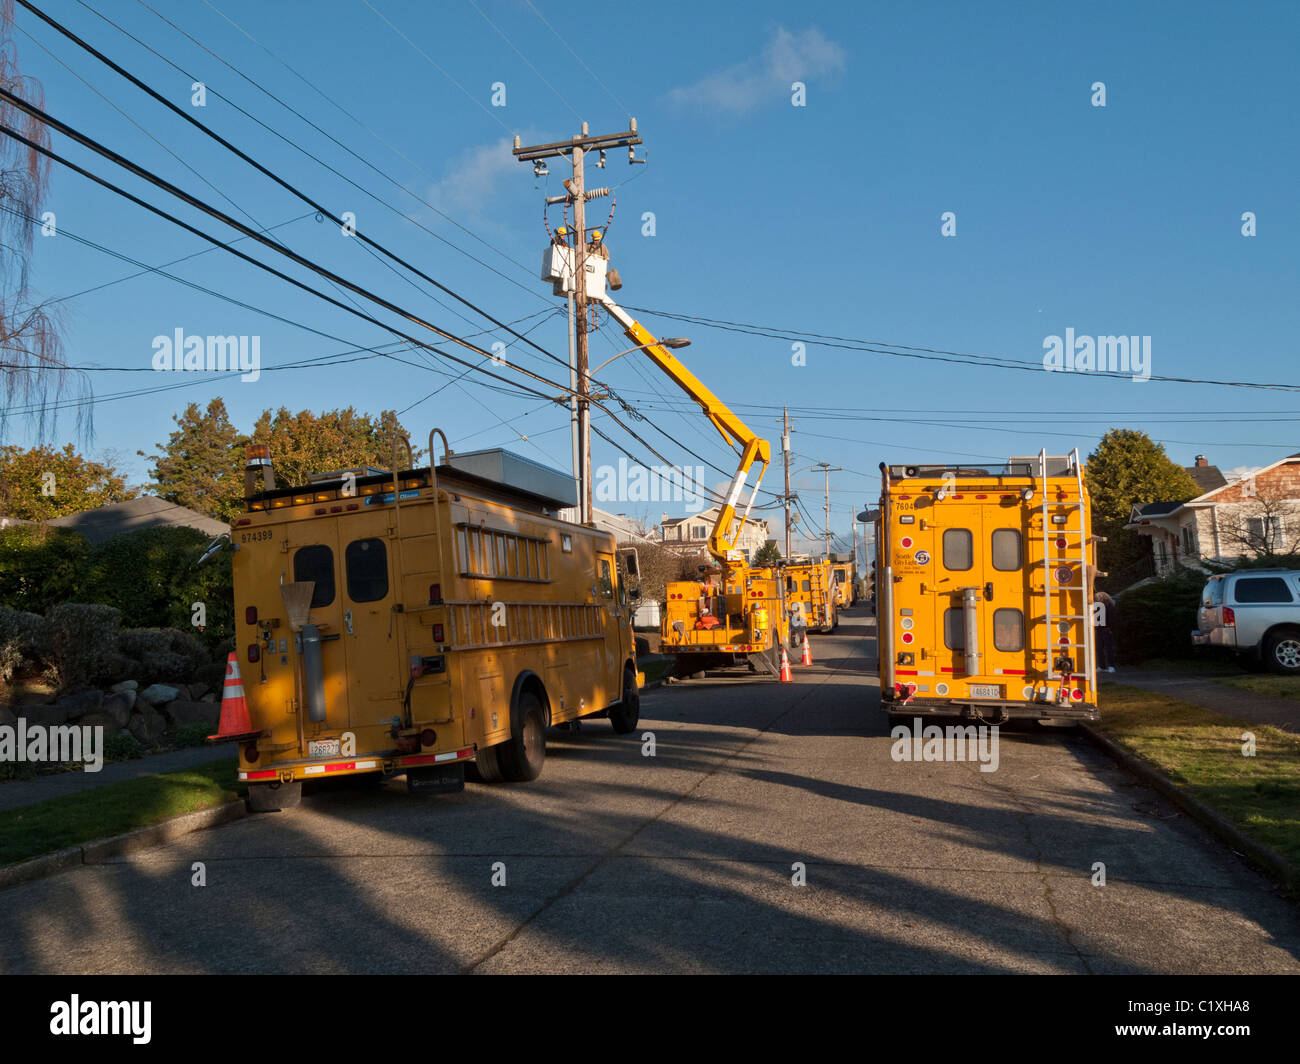 Five Seattle City Light Utility Trucks Work On Repairing Electrical Power  Outage, Seattle, Washington